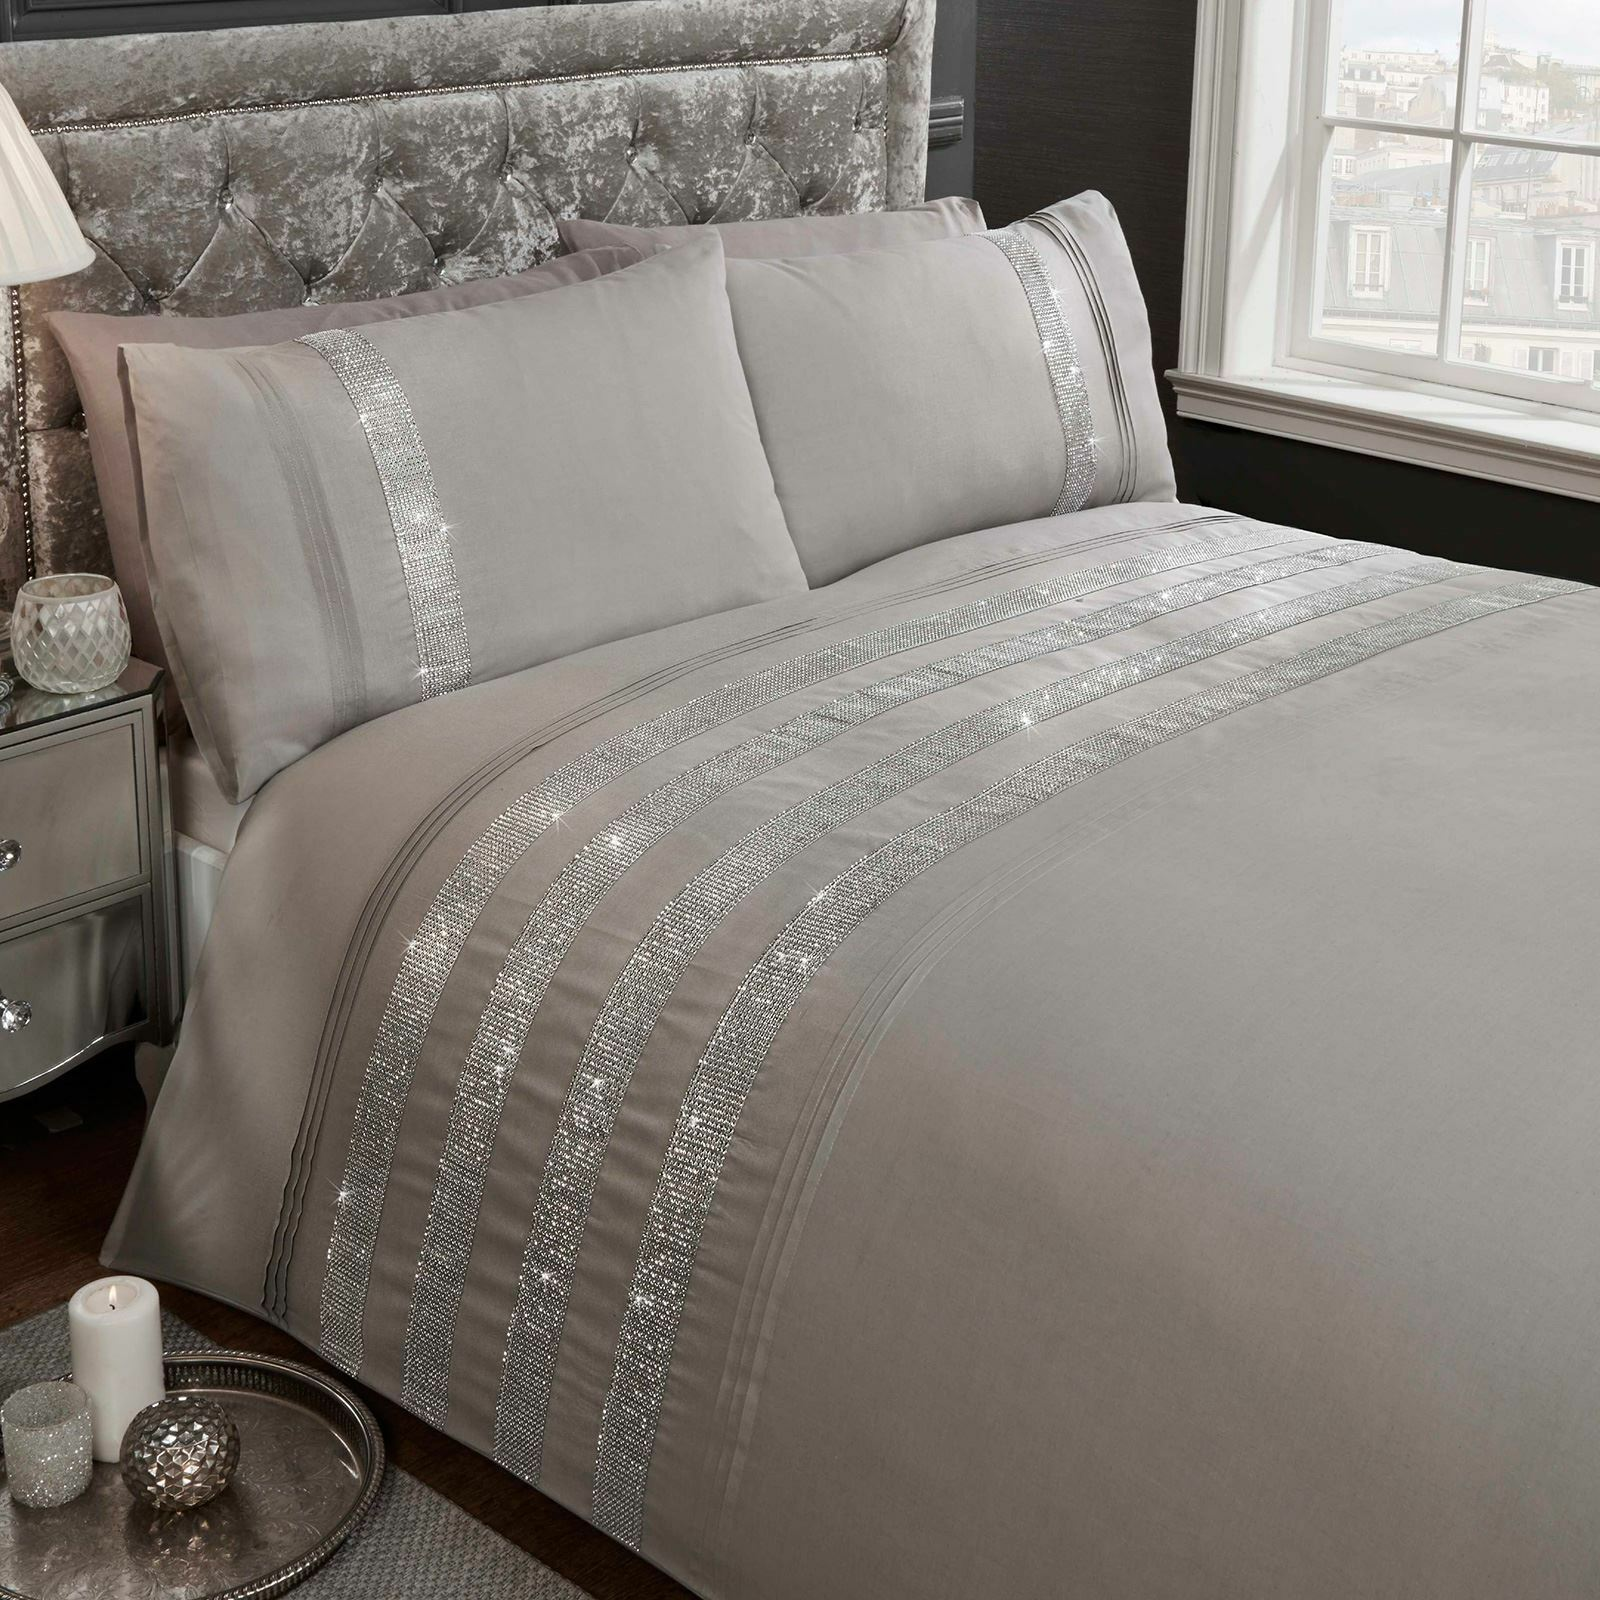 CARLY DIAMANTE GREY KING SIZE DUVET COVER AND PILLOWCASE SET ADULT BEDDING SET